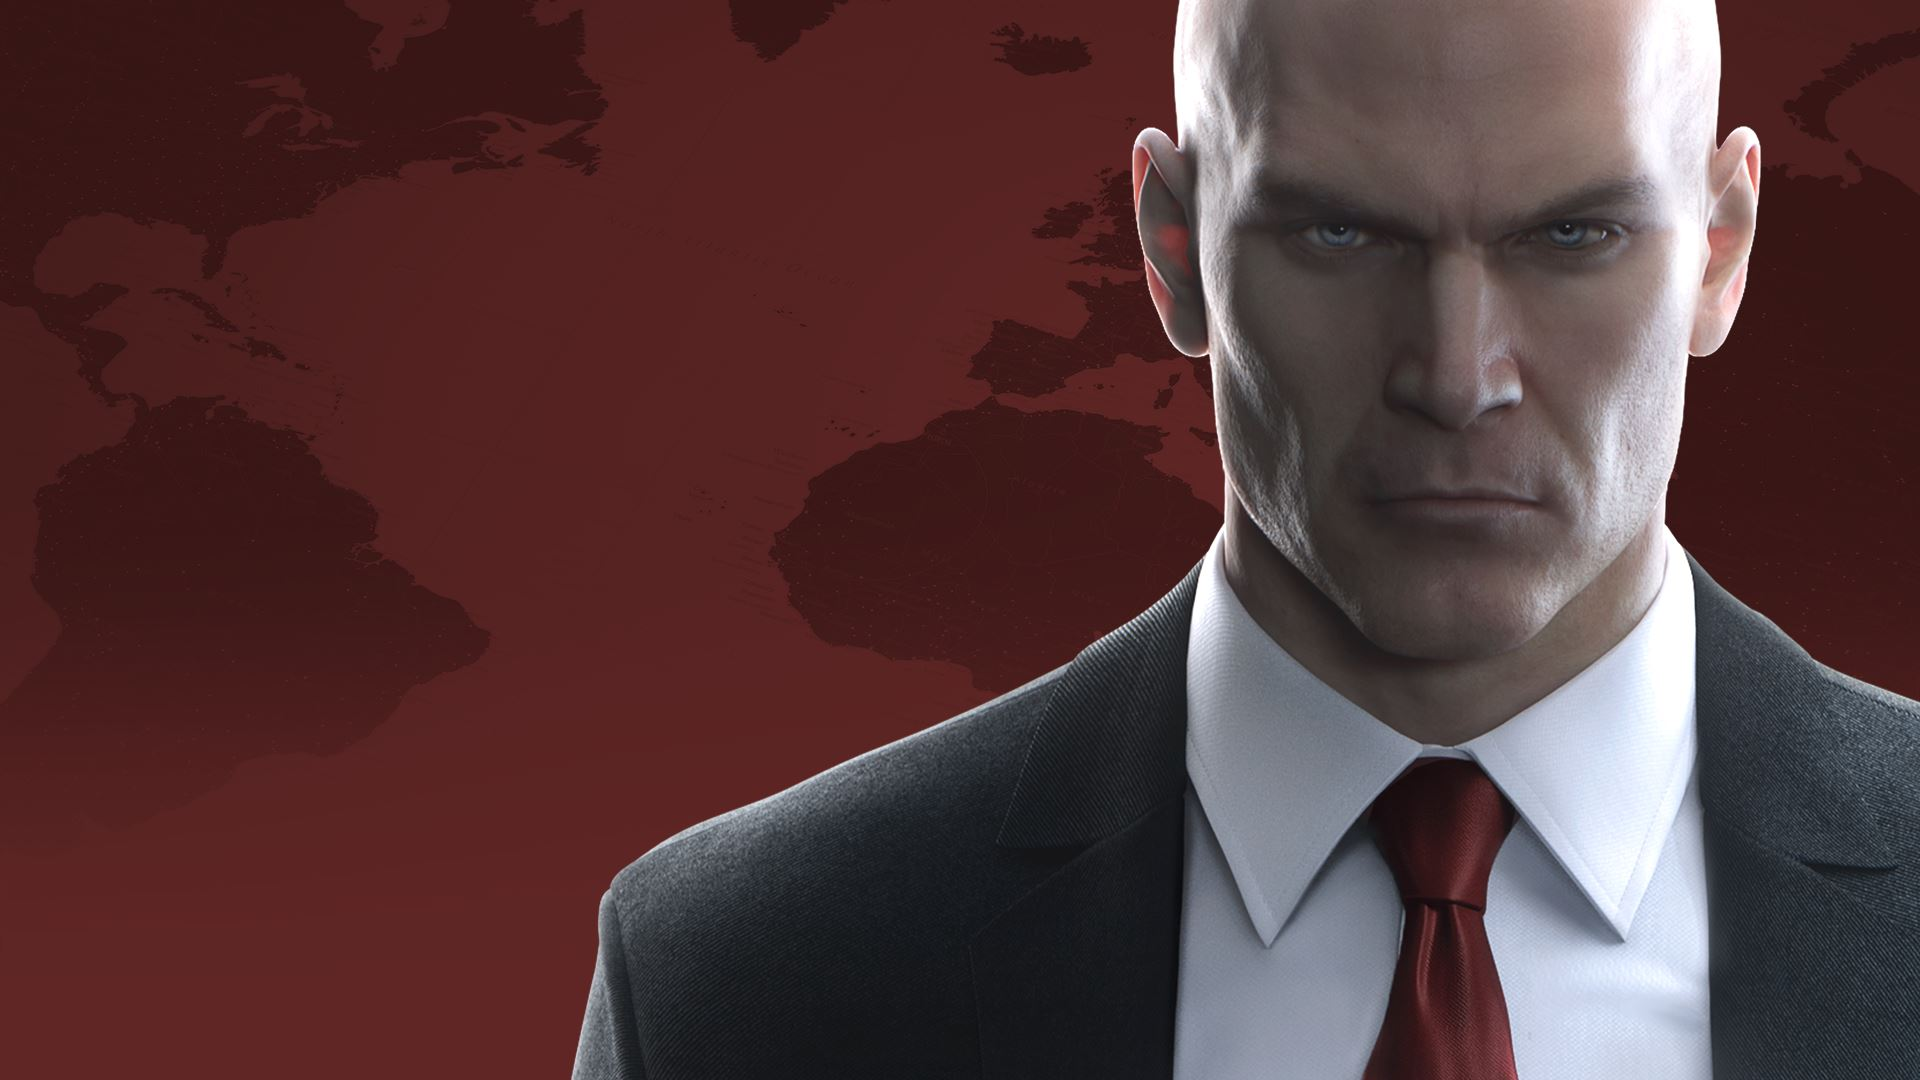 Hitman 2 has been announced!